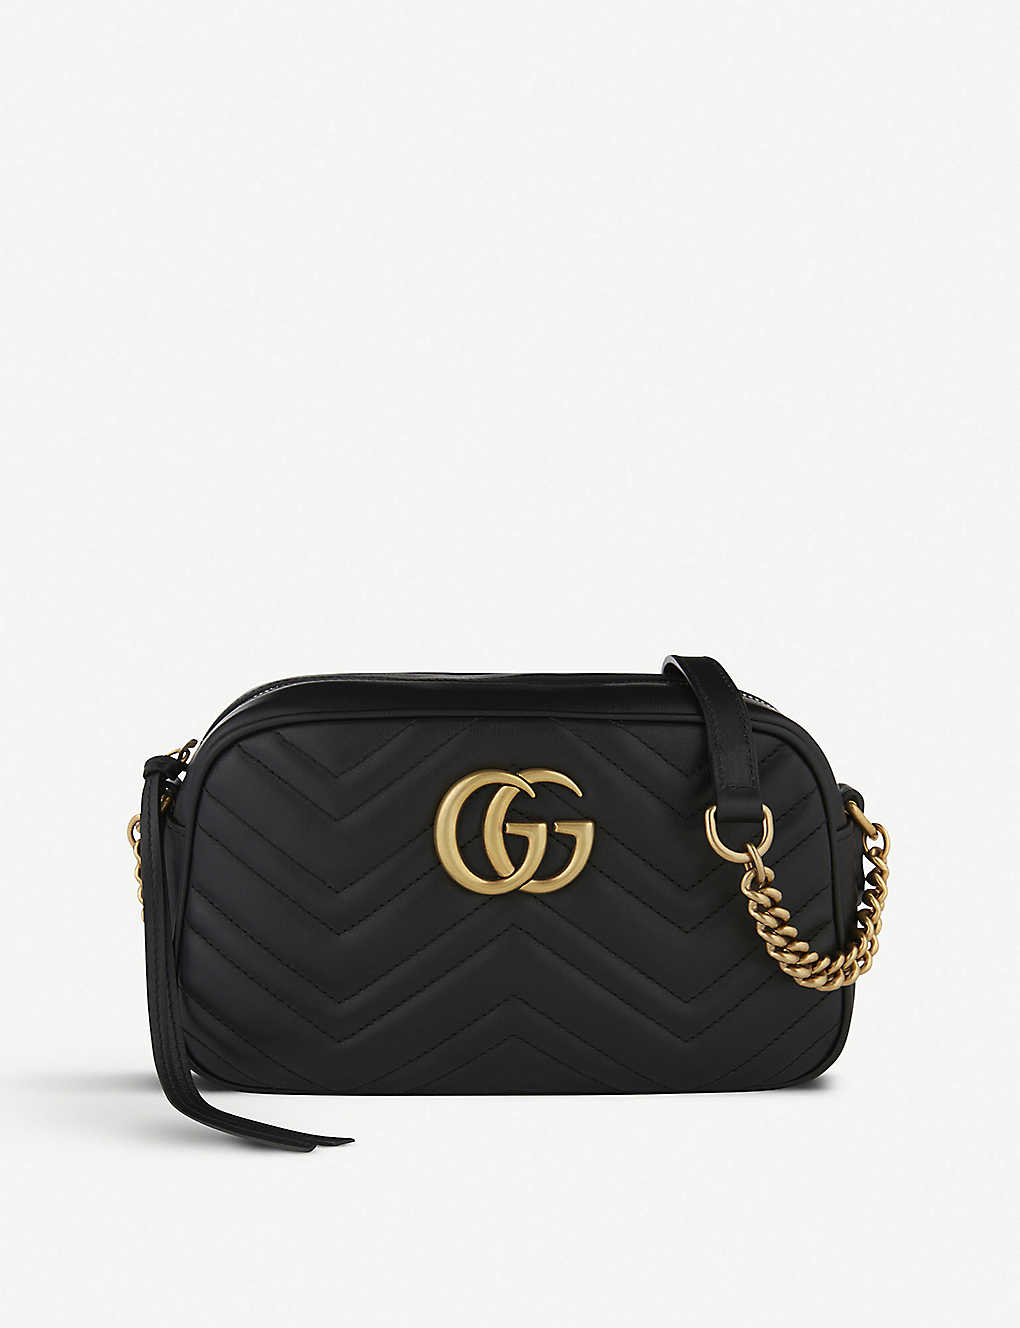 d5e941a8b42c GUCCI - Marmont matelassé leather shoulder bag | Selfridges.com